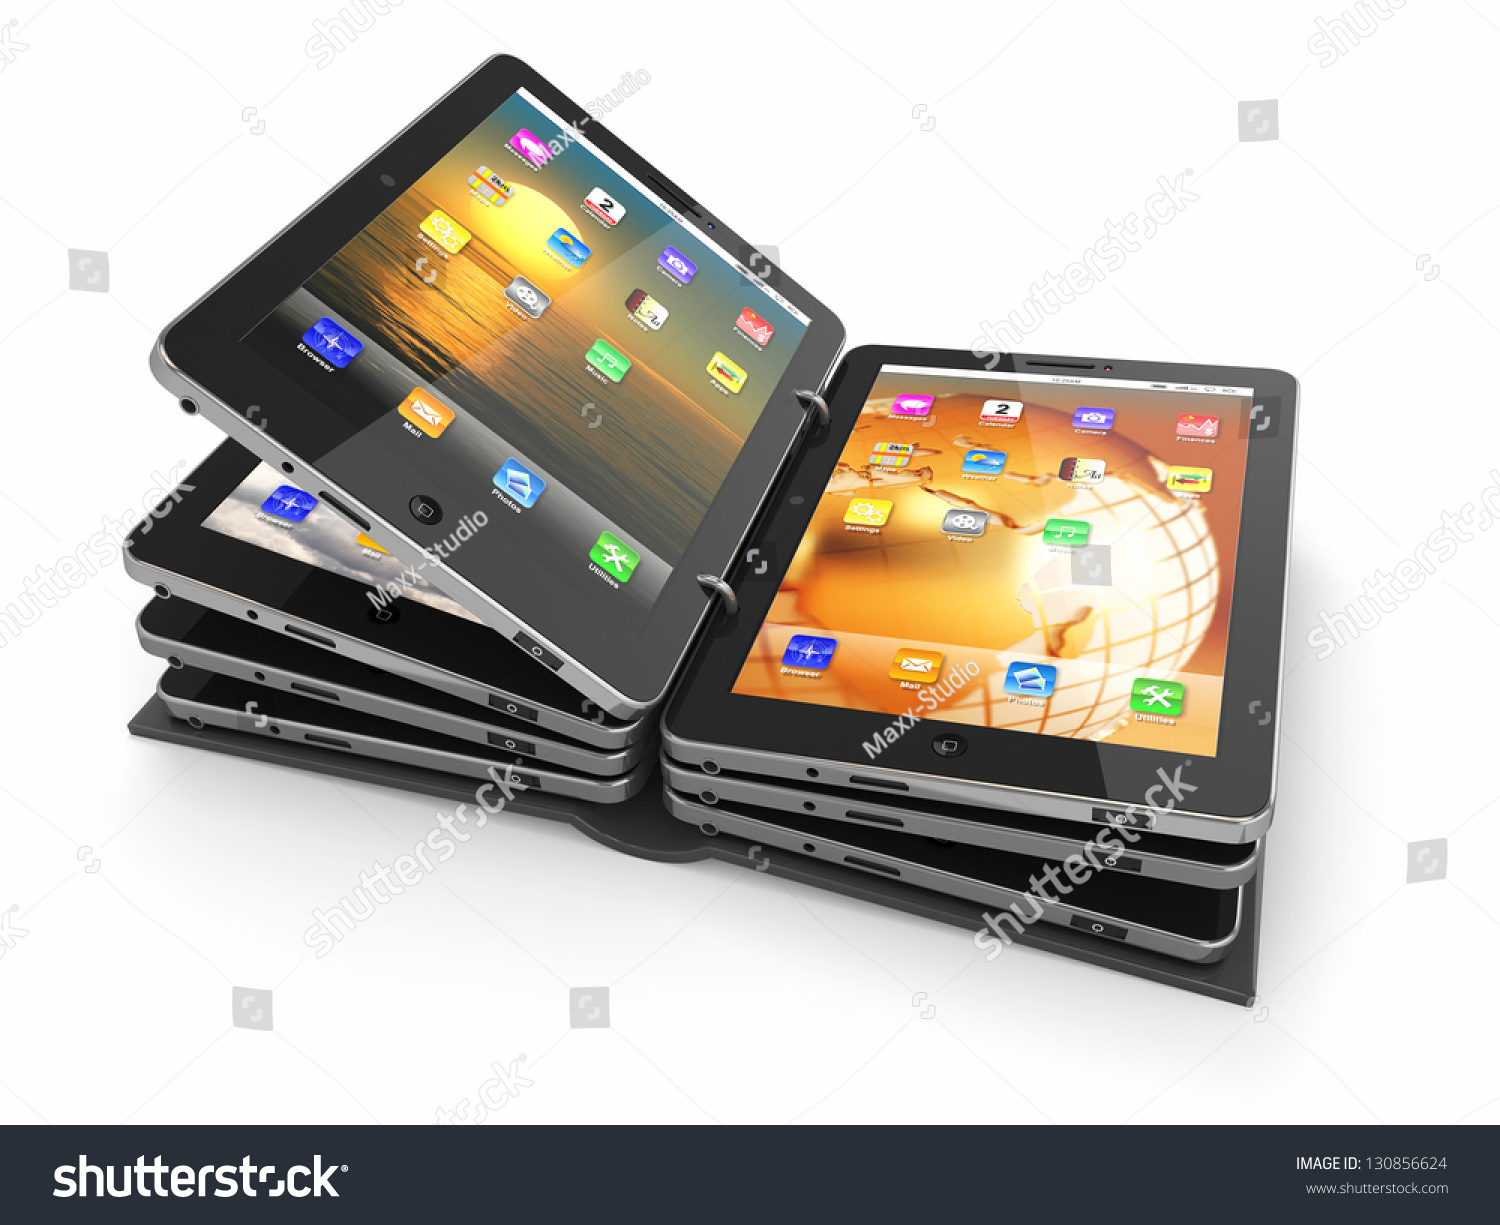 how to add folder in tablet